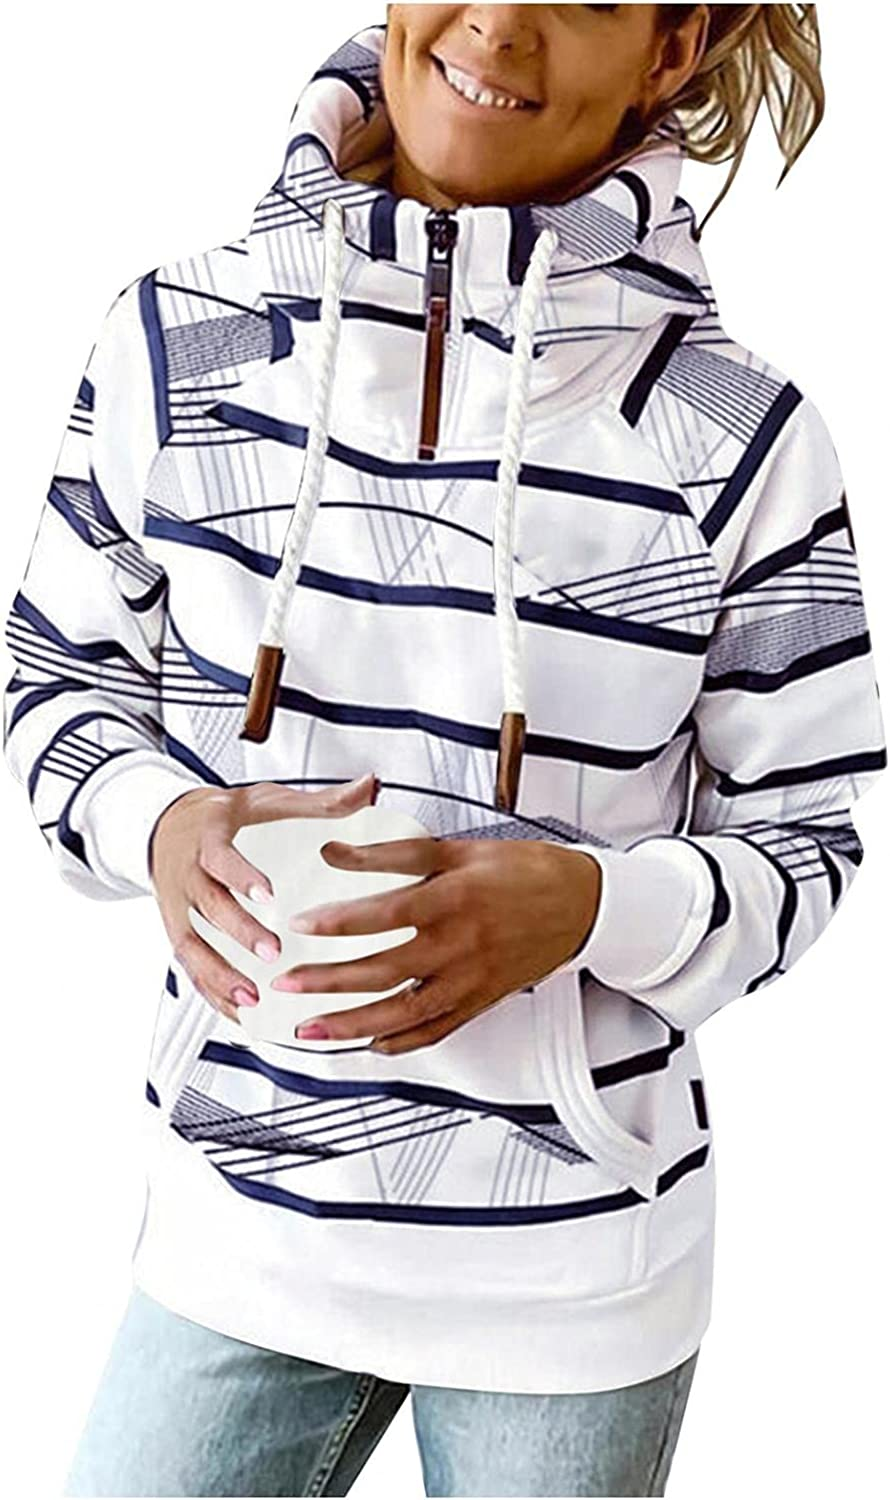 FABIURT Hoodies for Women, Womens Fashion 1/4 Zip Hoodies High Collar Striped Loose Fit Casual Long Sleeve Tops Pullover